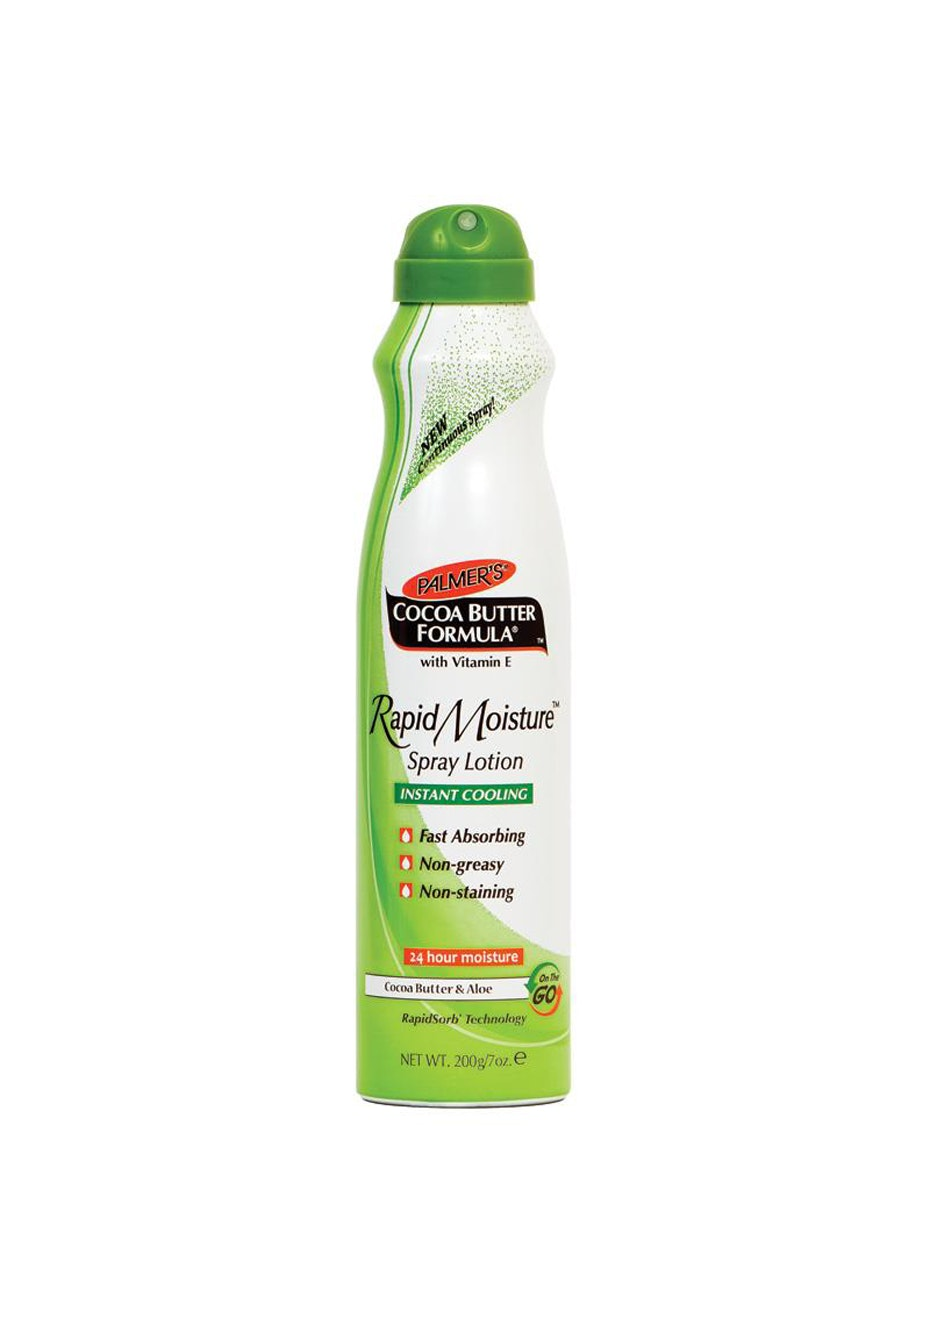 Palmers Cocoa Butter Formula & Aloe Rapid Moisture Spray Lotion 200g